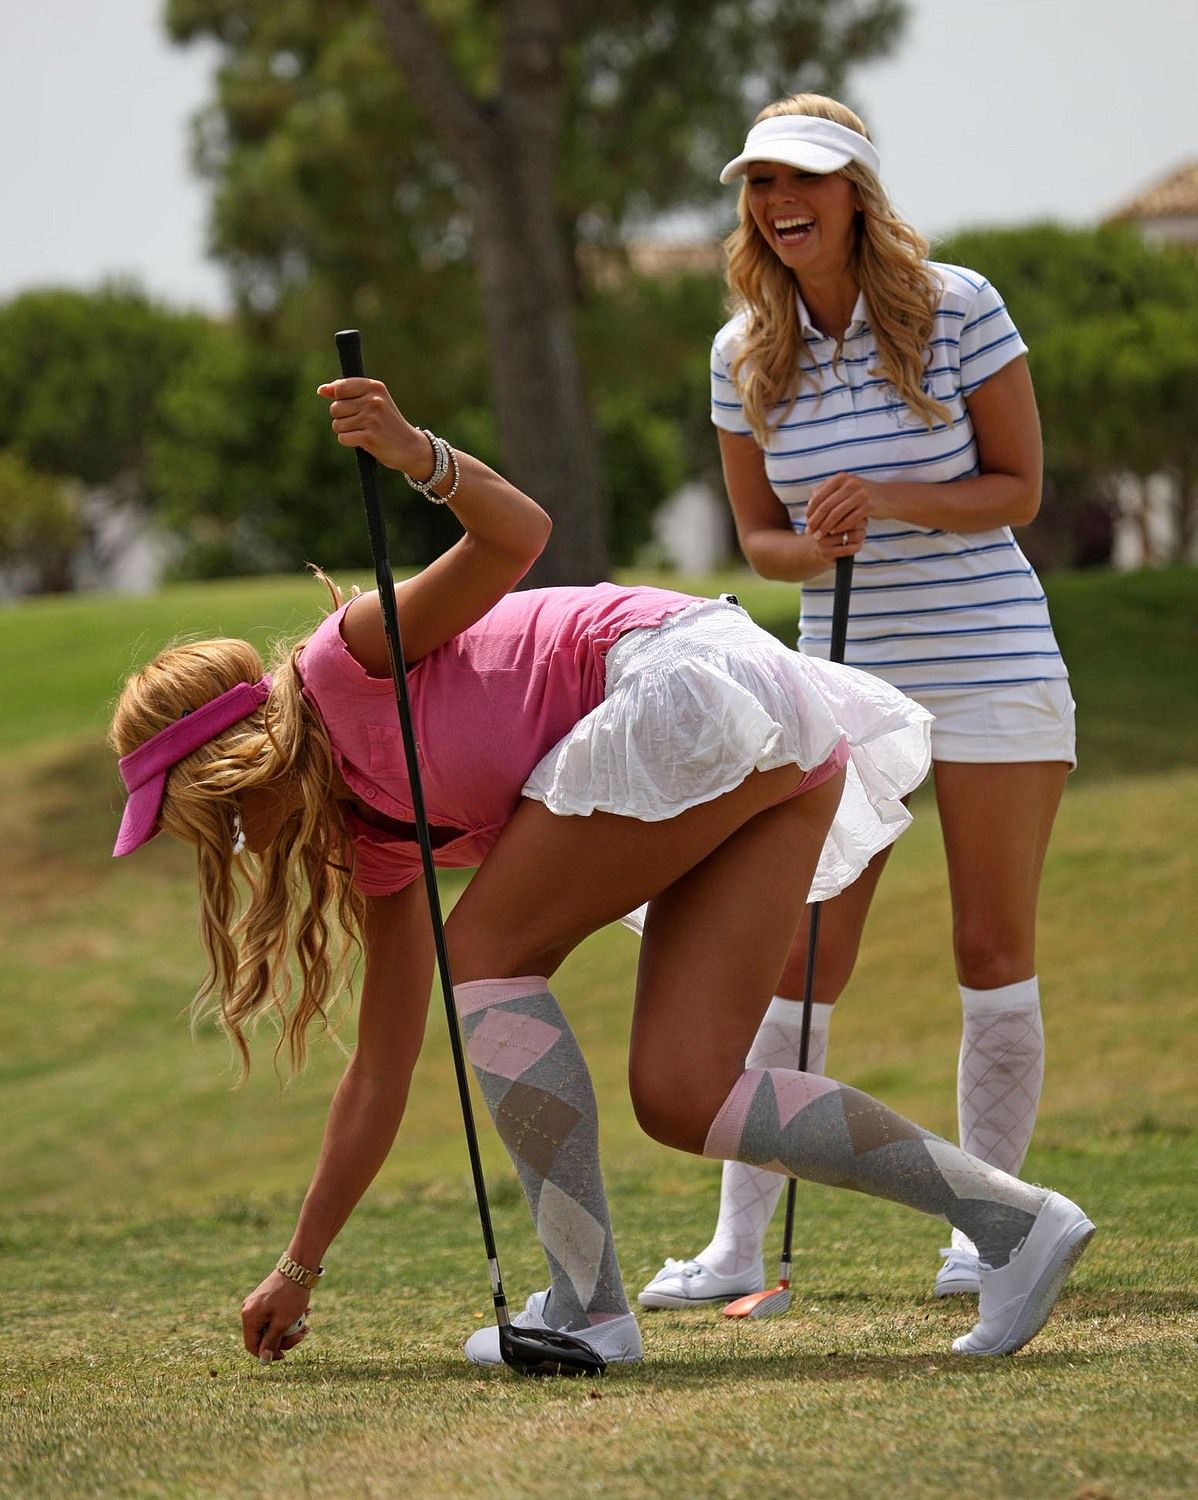 Hot slutty golf chicks, buy dildo in orlando